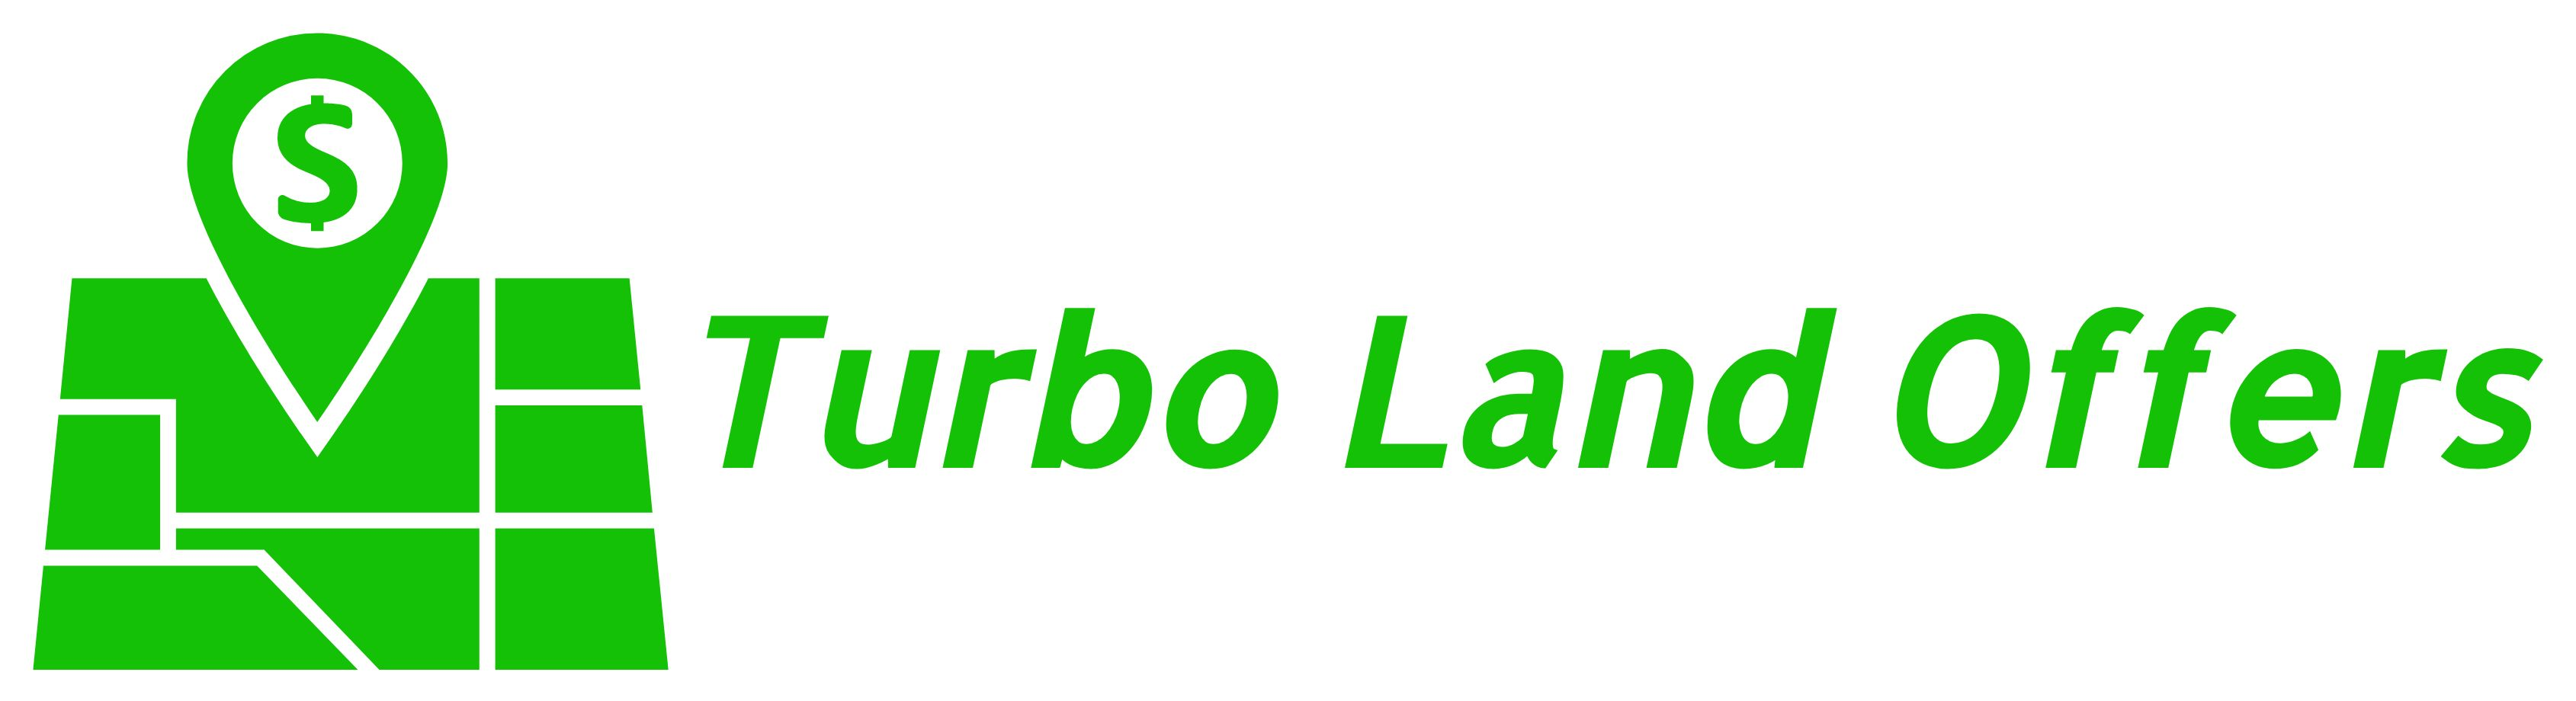 Turbo Land Offers